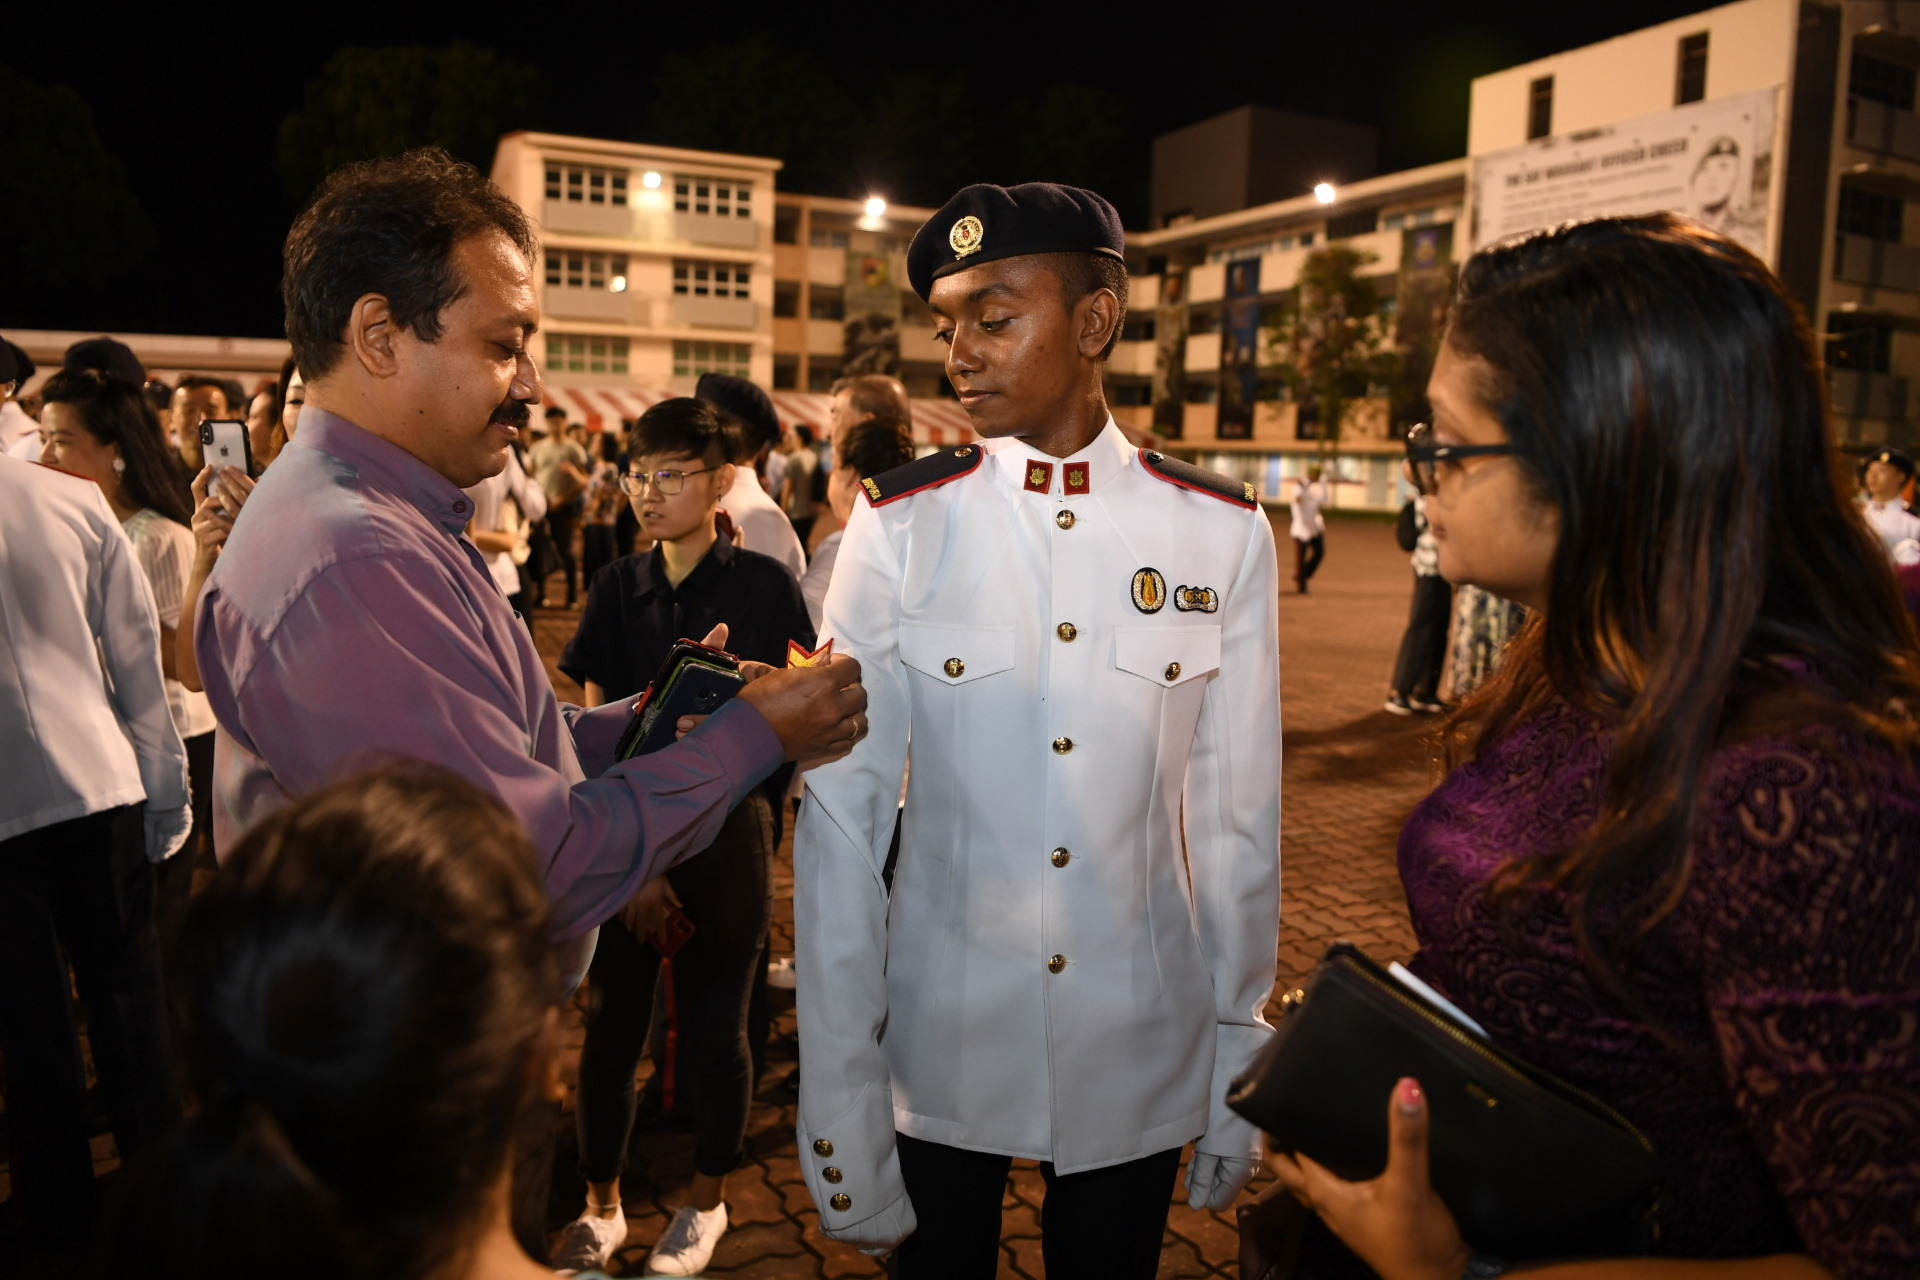 3SG Rammdarshan S/O Ramesh's father affixing the 3rd Sergeant rank on to his uniform at the parade.